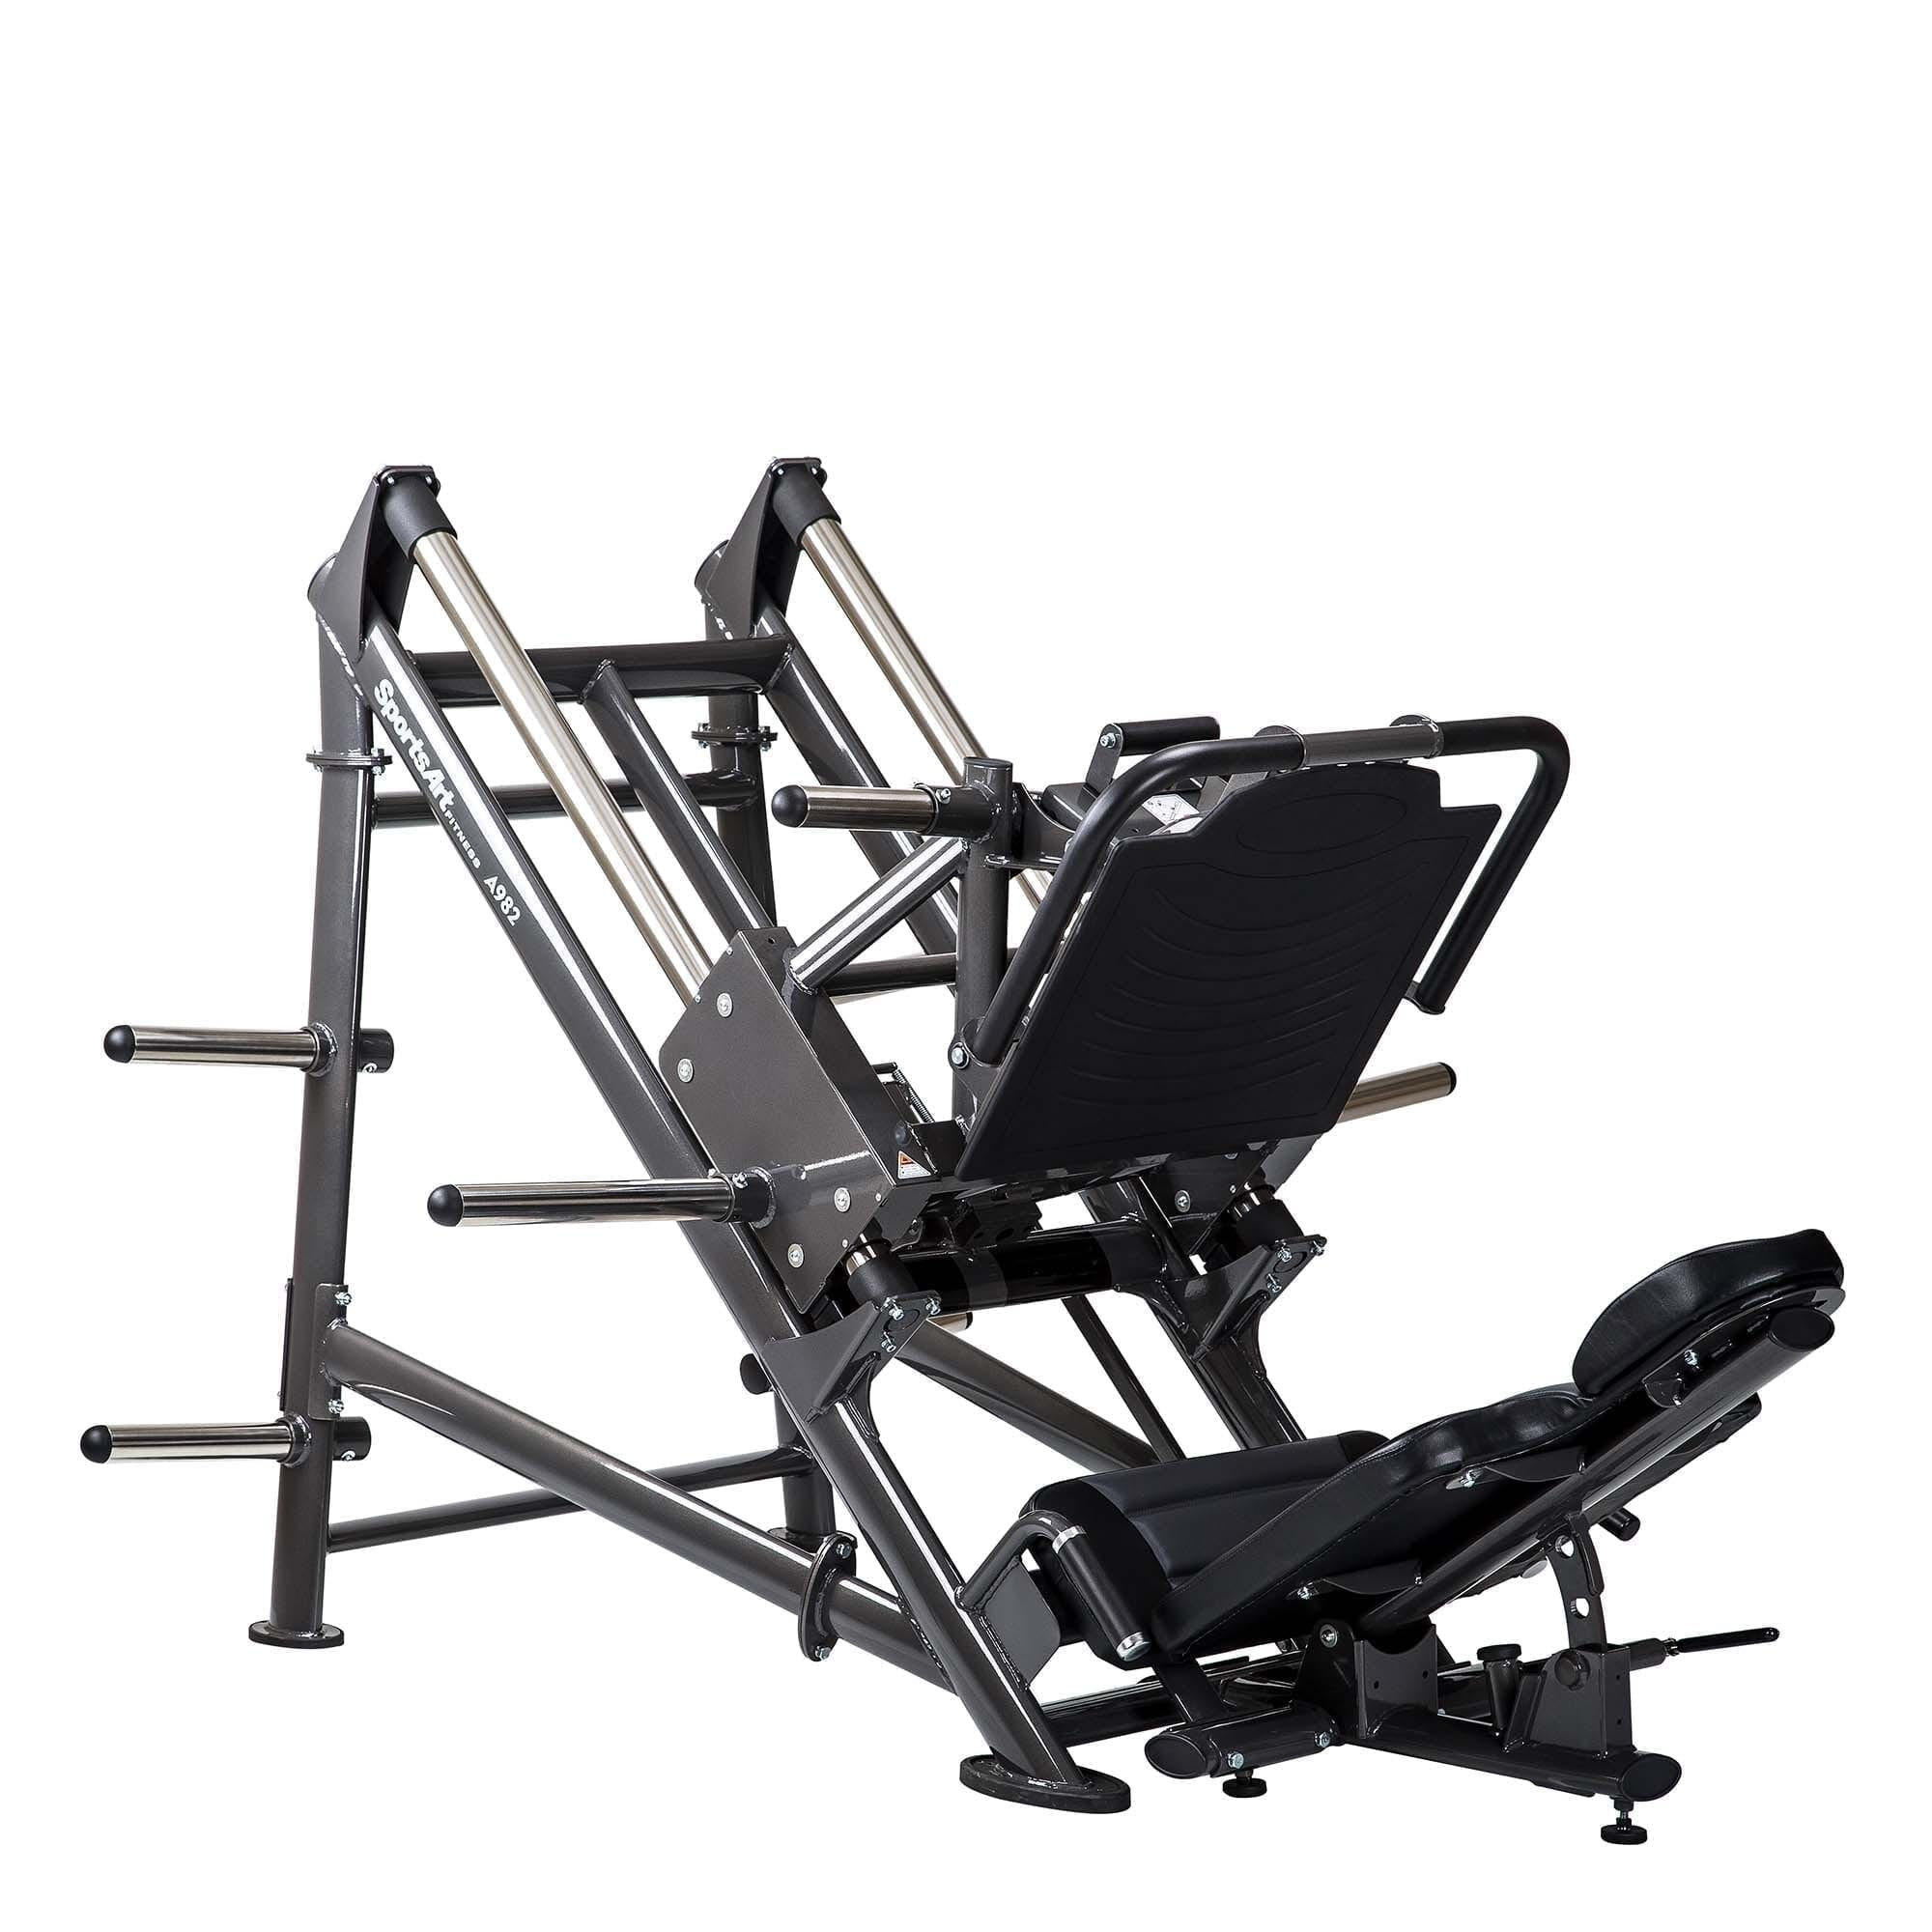 Sports Art A982 PLATE LOADED ANGLED LEG PRESS